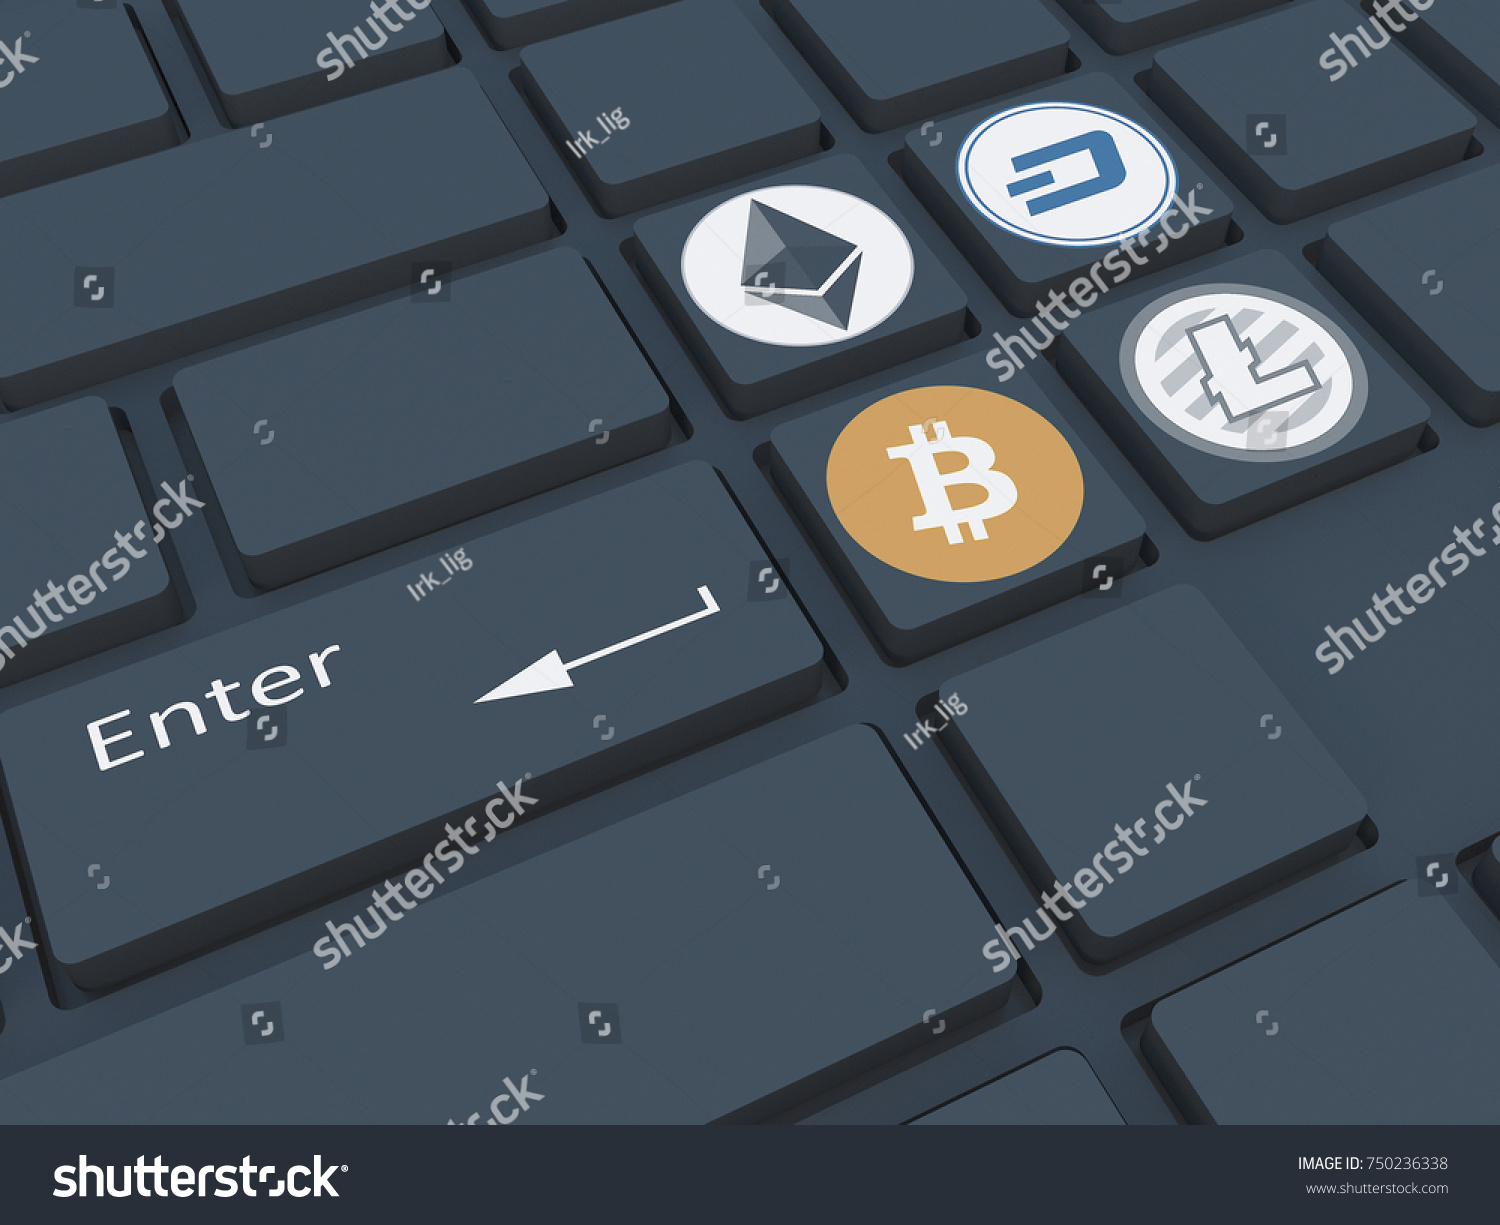 Crypto currency keyboard symbols mining crypto stock illustration keyboard with symbols mining of crypto currency on the computer 3d biocorpaavc Choice Image